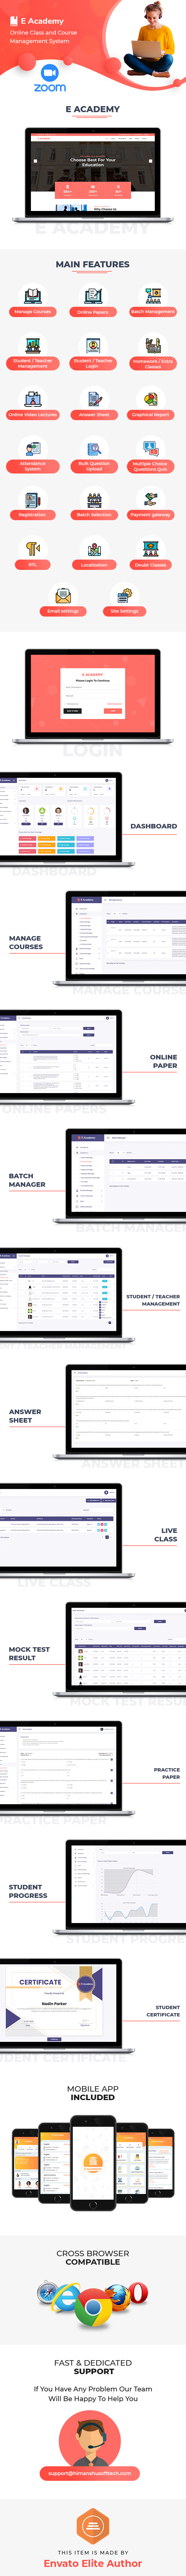 E-Academy - Online Classes / Institute / Tuition And Course Management (Android App + Admin Panel) - 1